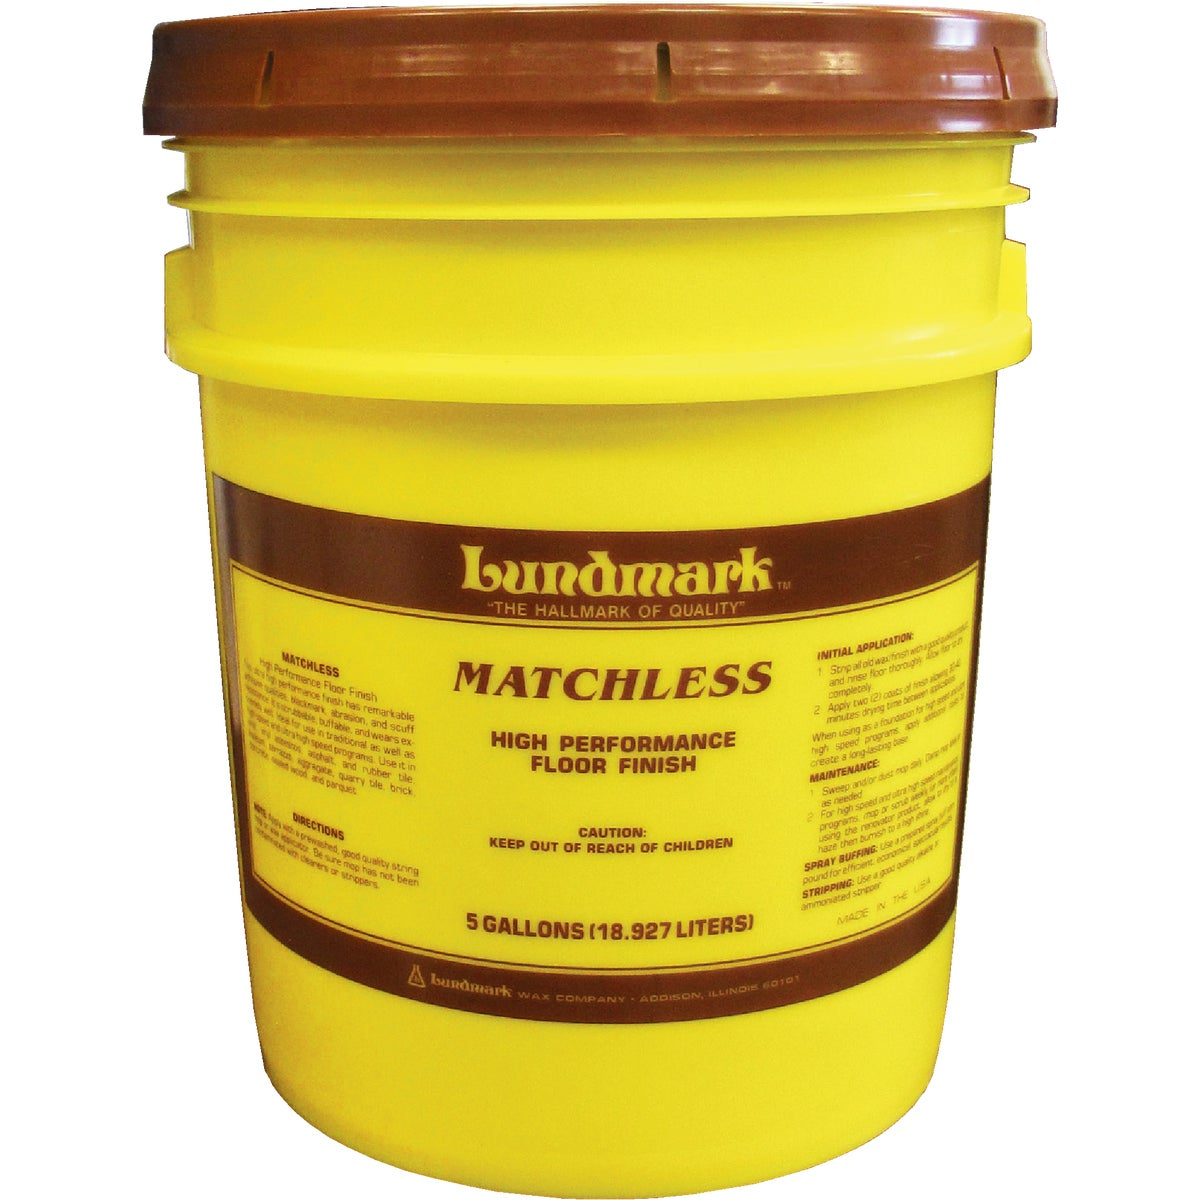 5GAL FLOOR FINISH - 3306G05 by Lundmark Wax Co